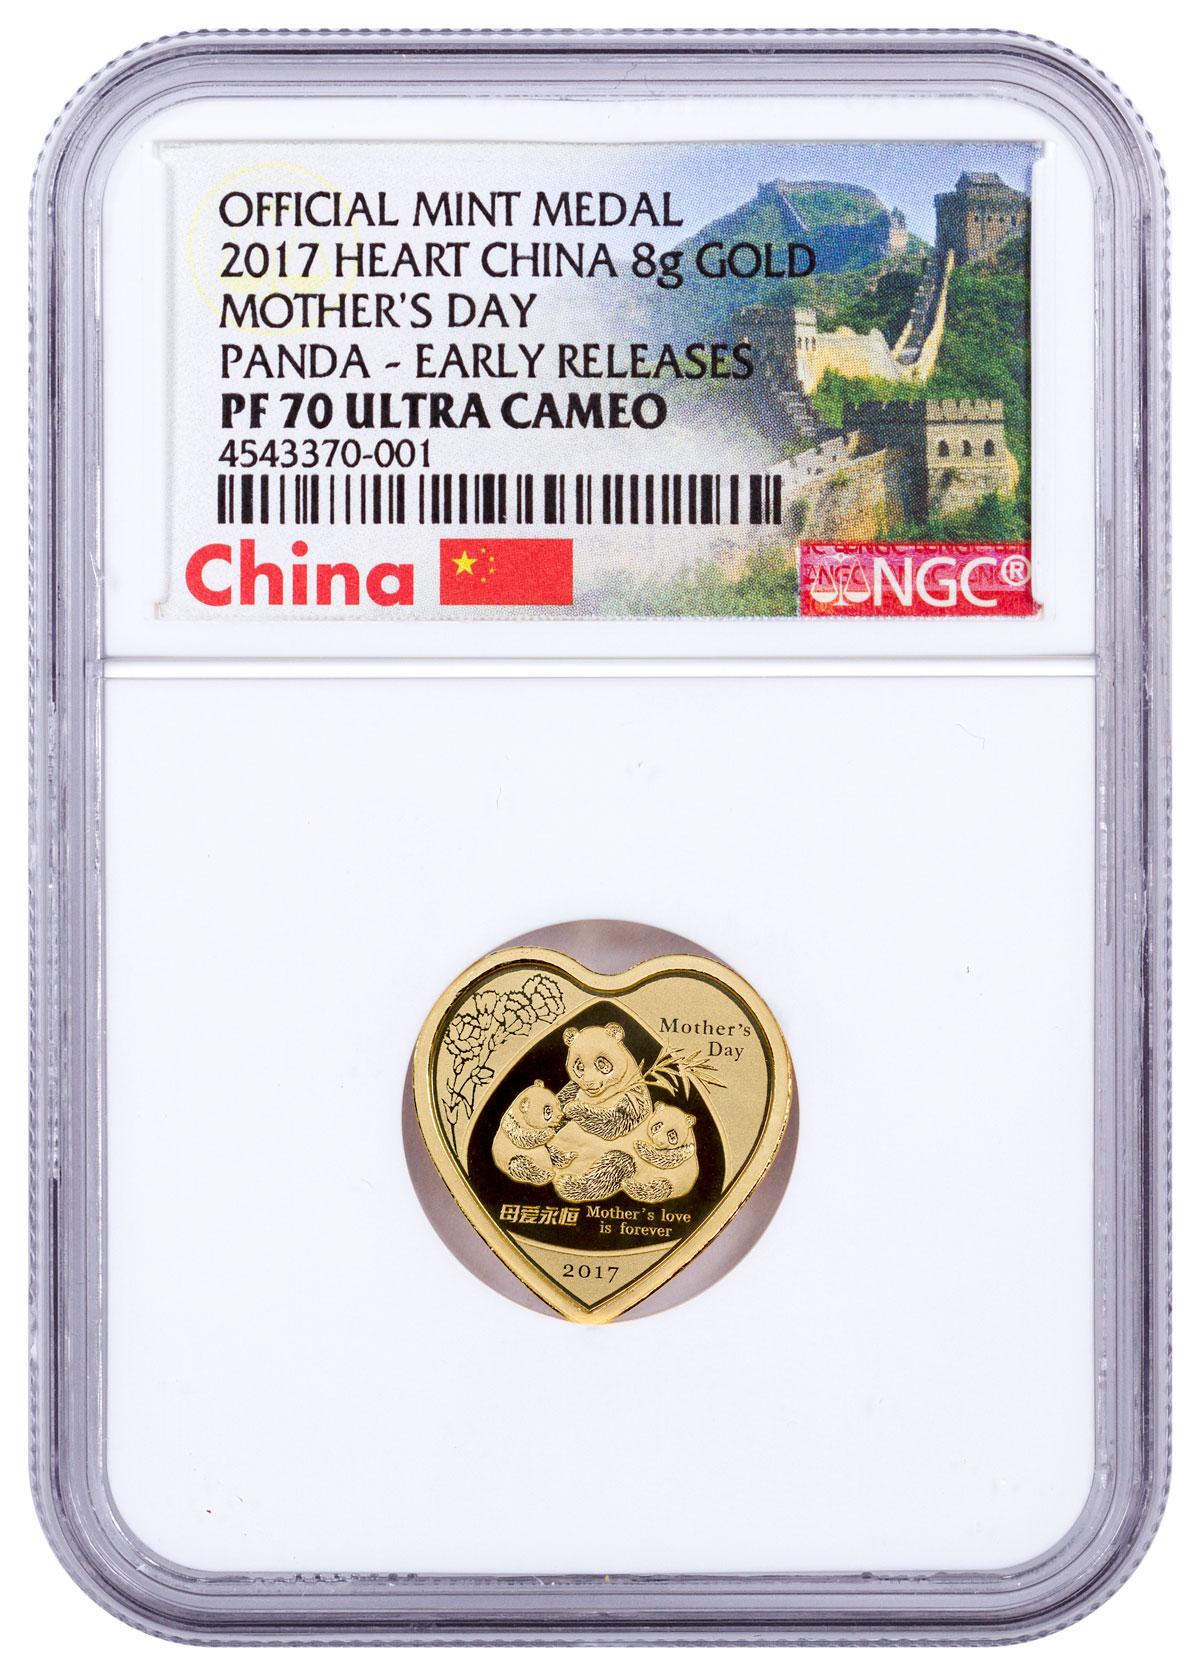 2017 China Mothers Day - Panda Heart Shaped 8 g Gold Proof Coin NGC PF70 UC ER (Exclusive Great Wall Label)